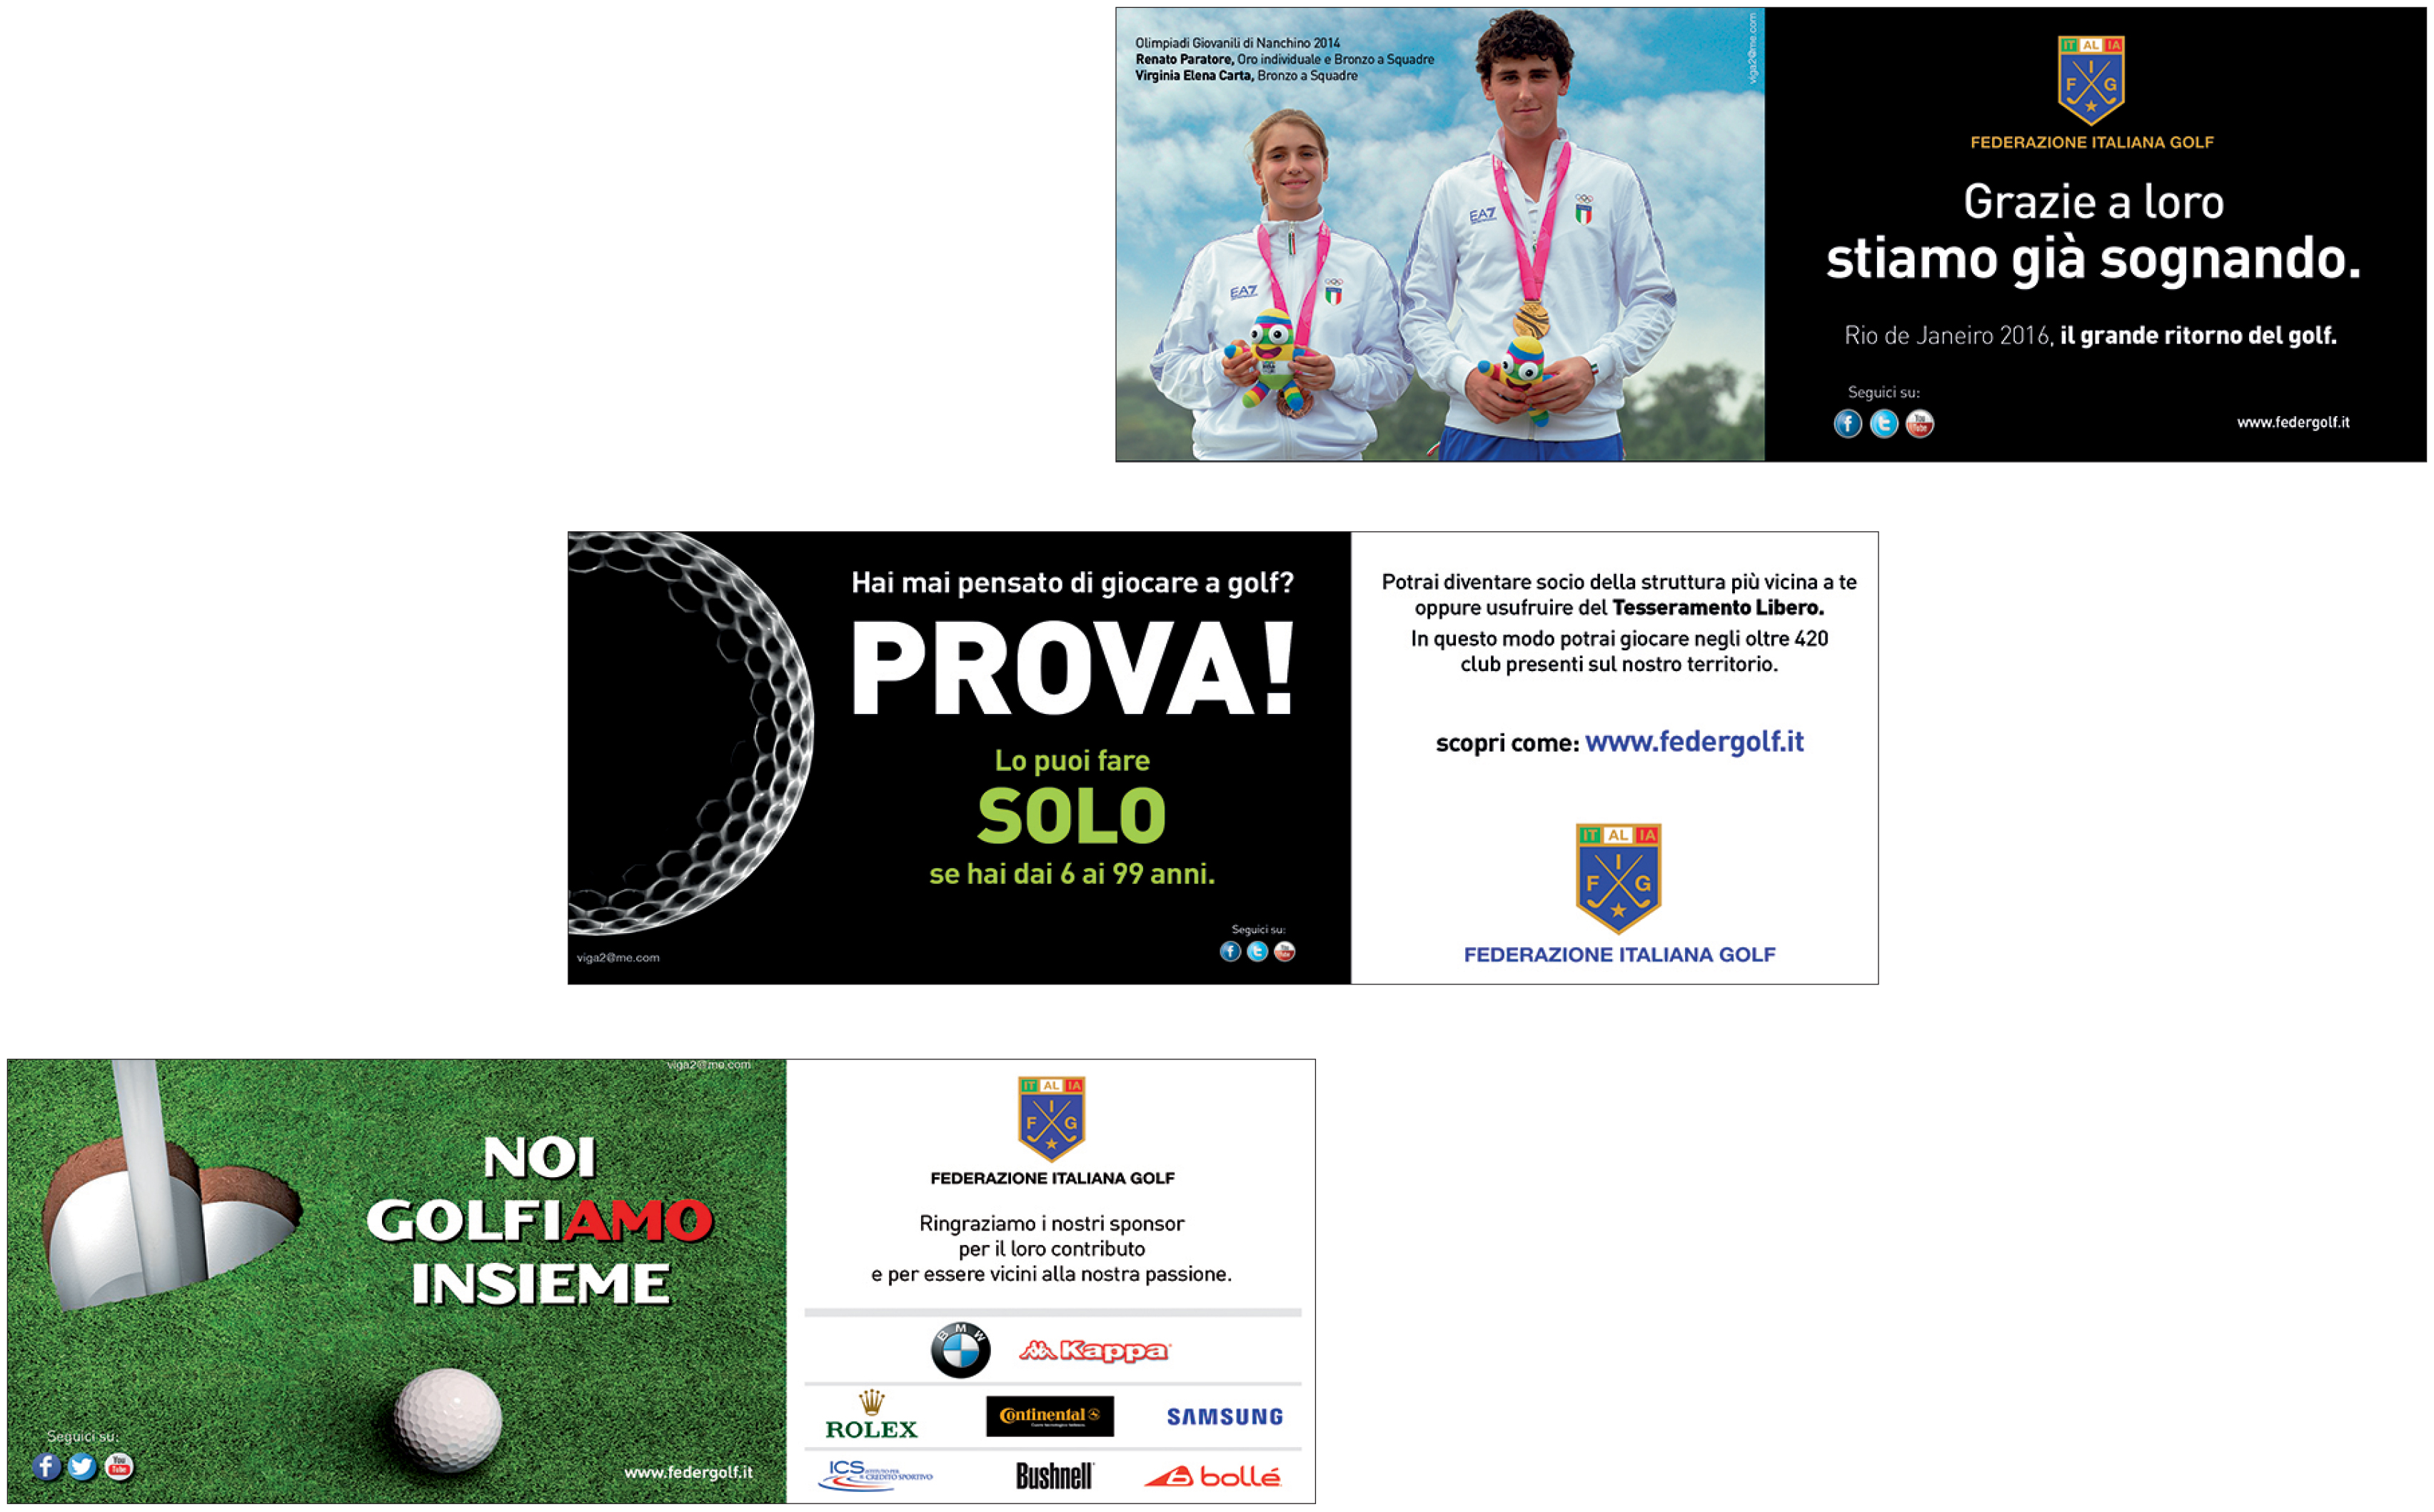 Federazione Italiana Golf, Federgolf, Golf, FIG, piedoni Gazzetta dello Sport, quotidiano